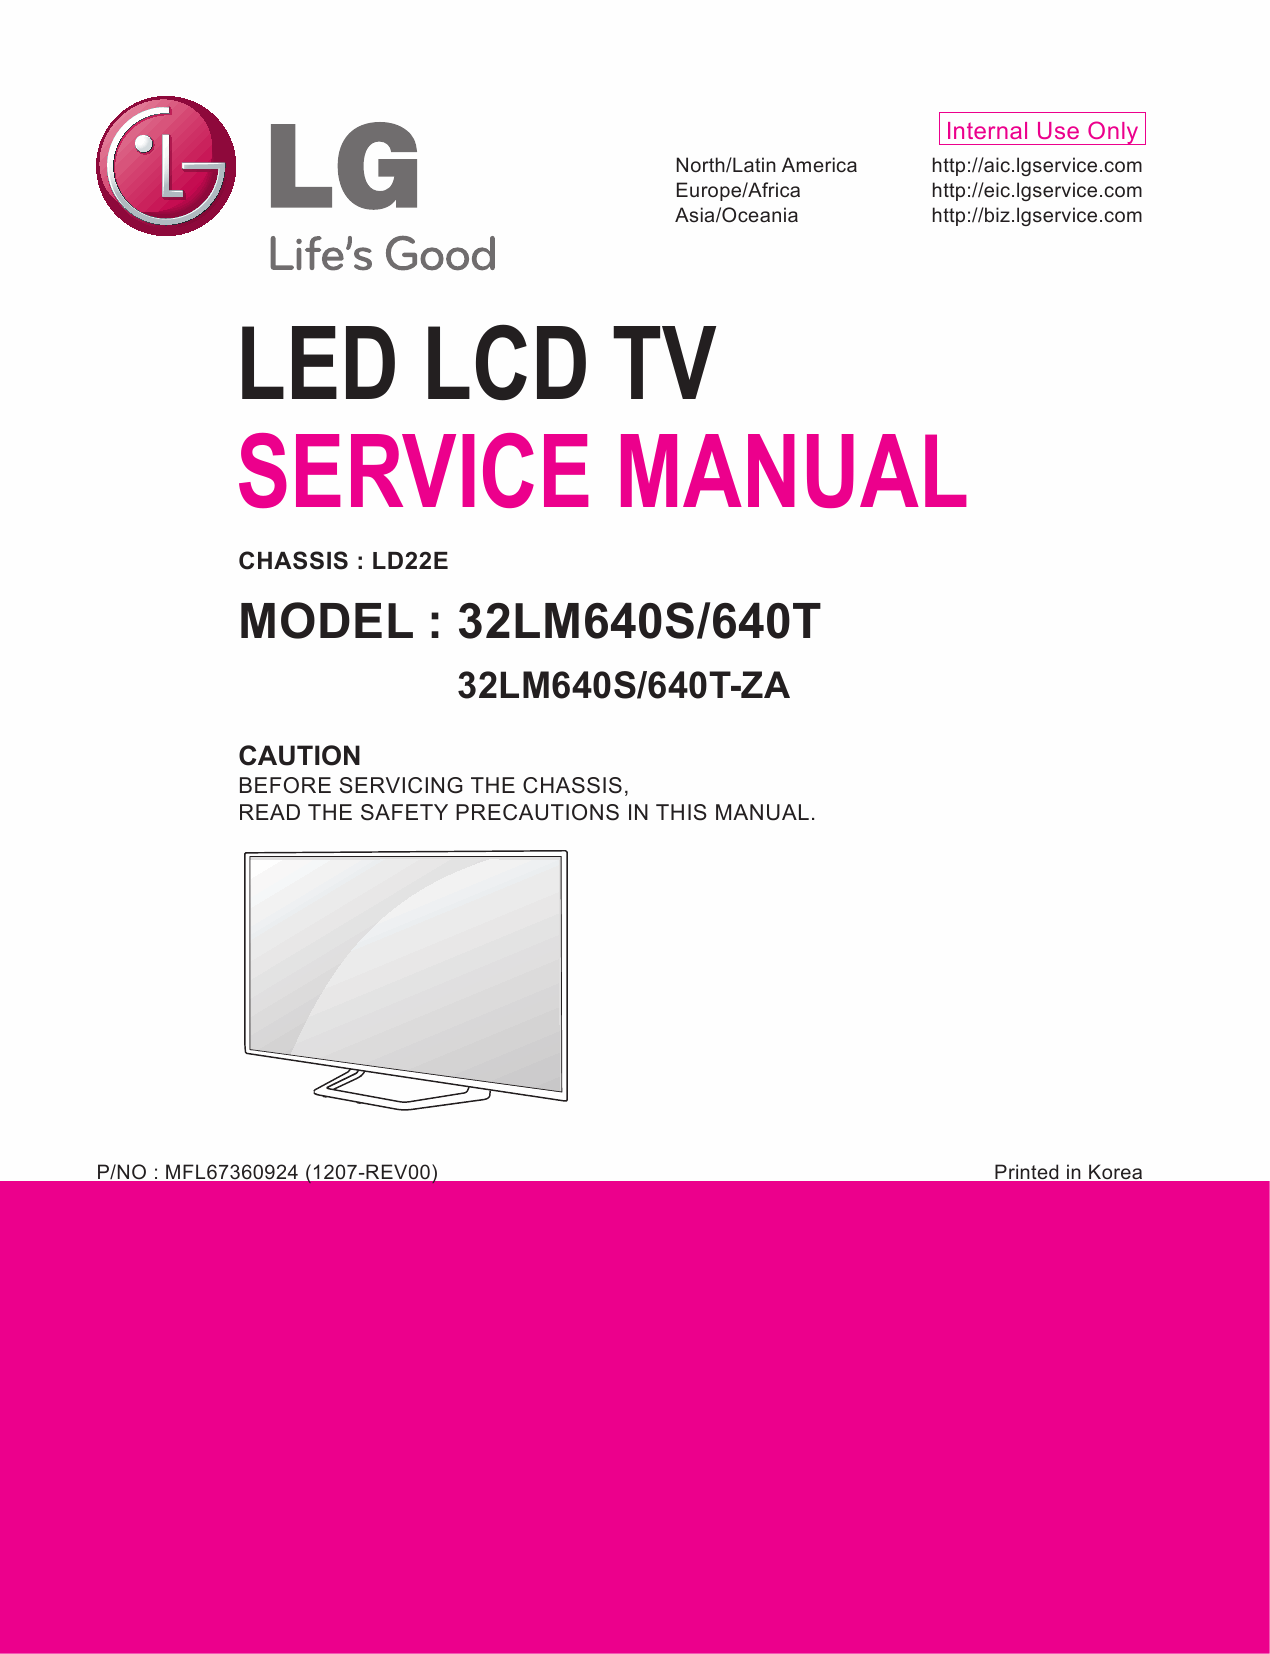 LG_LCD_TV_32LM640S_640T_Service_Manual_2012_Qmanual.com-1